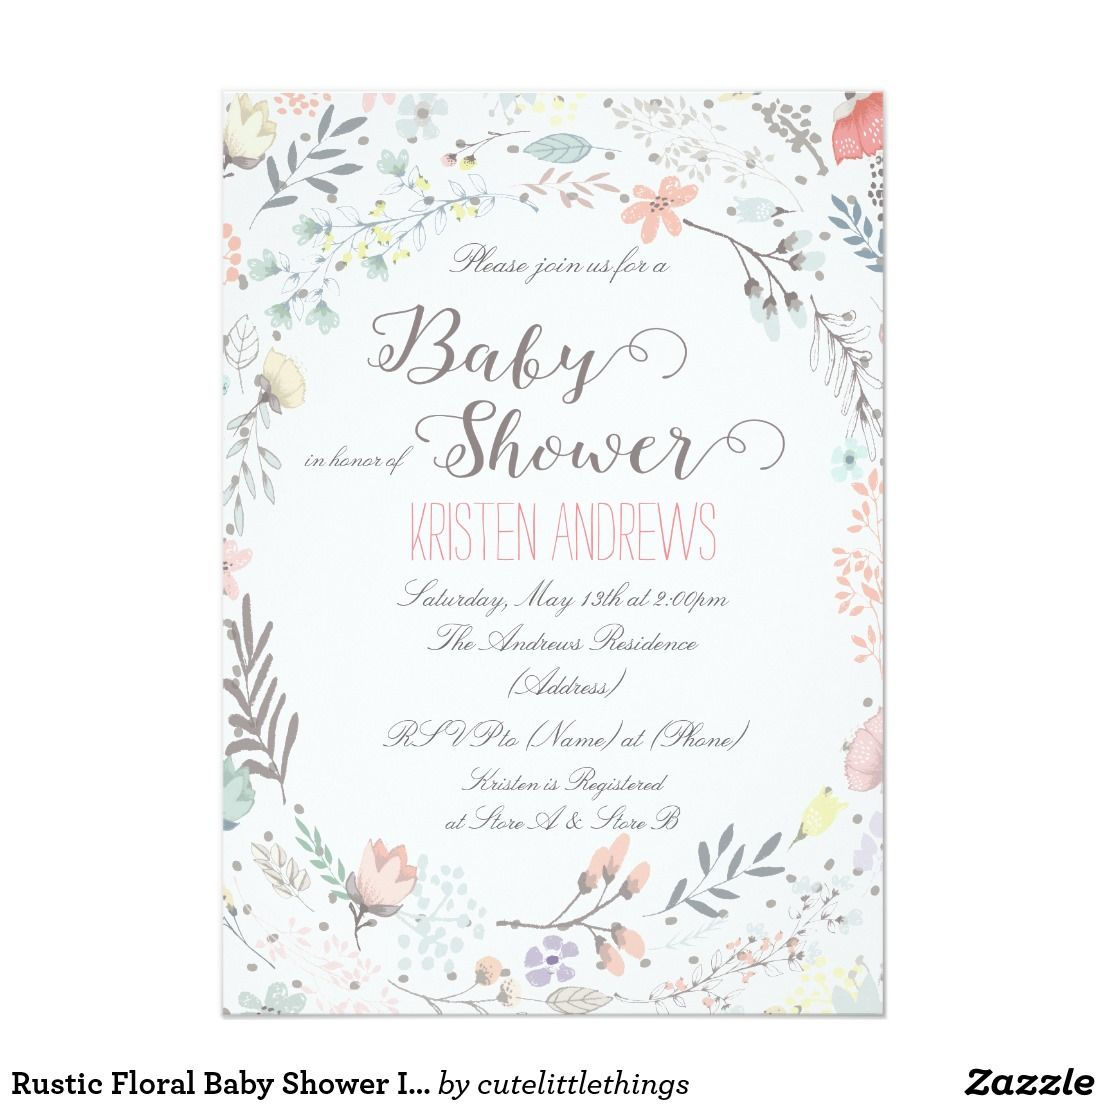 Rustic Floral Baby Shower Invitation II | Shower invitations and Babies